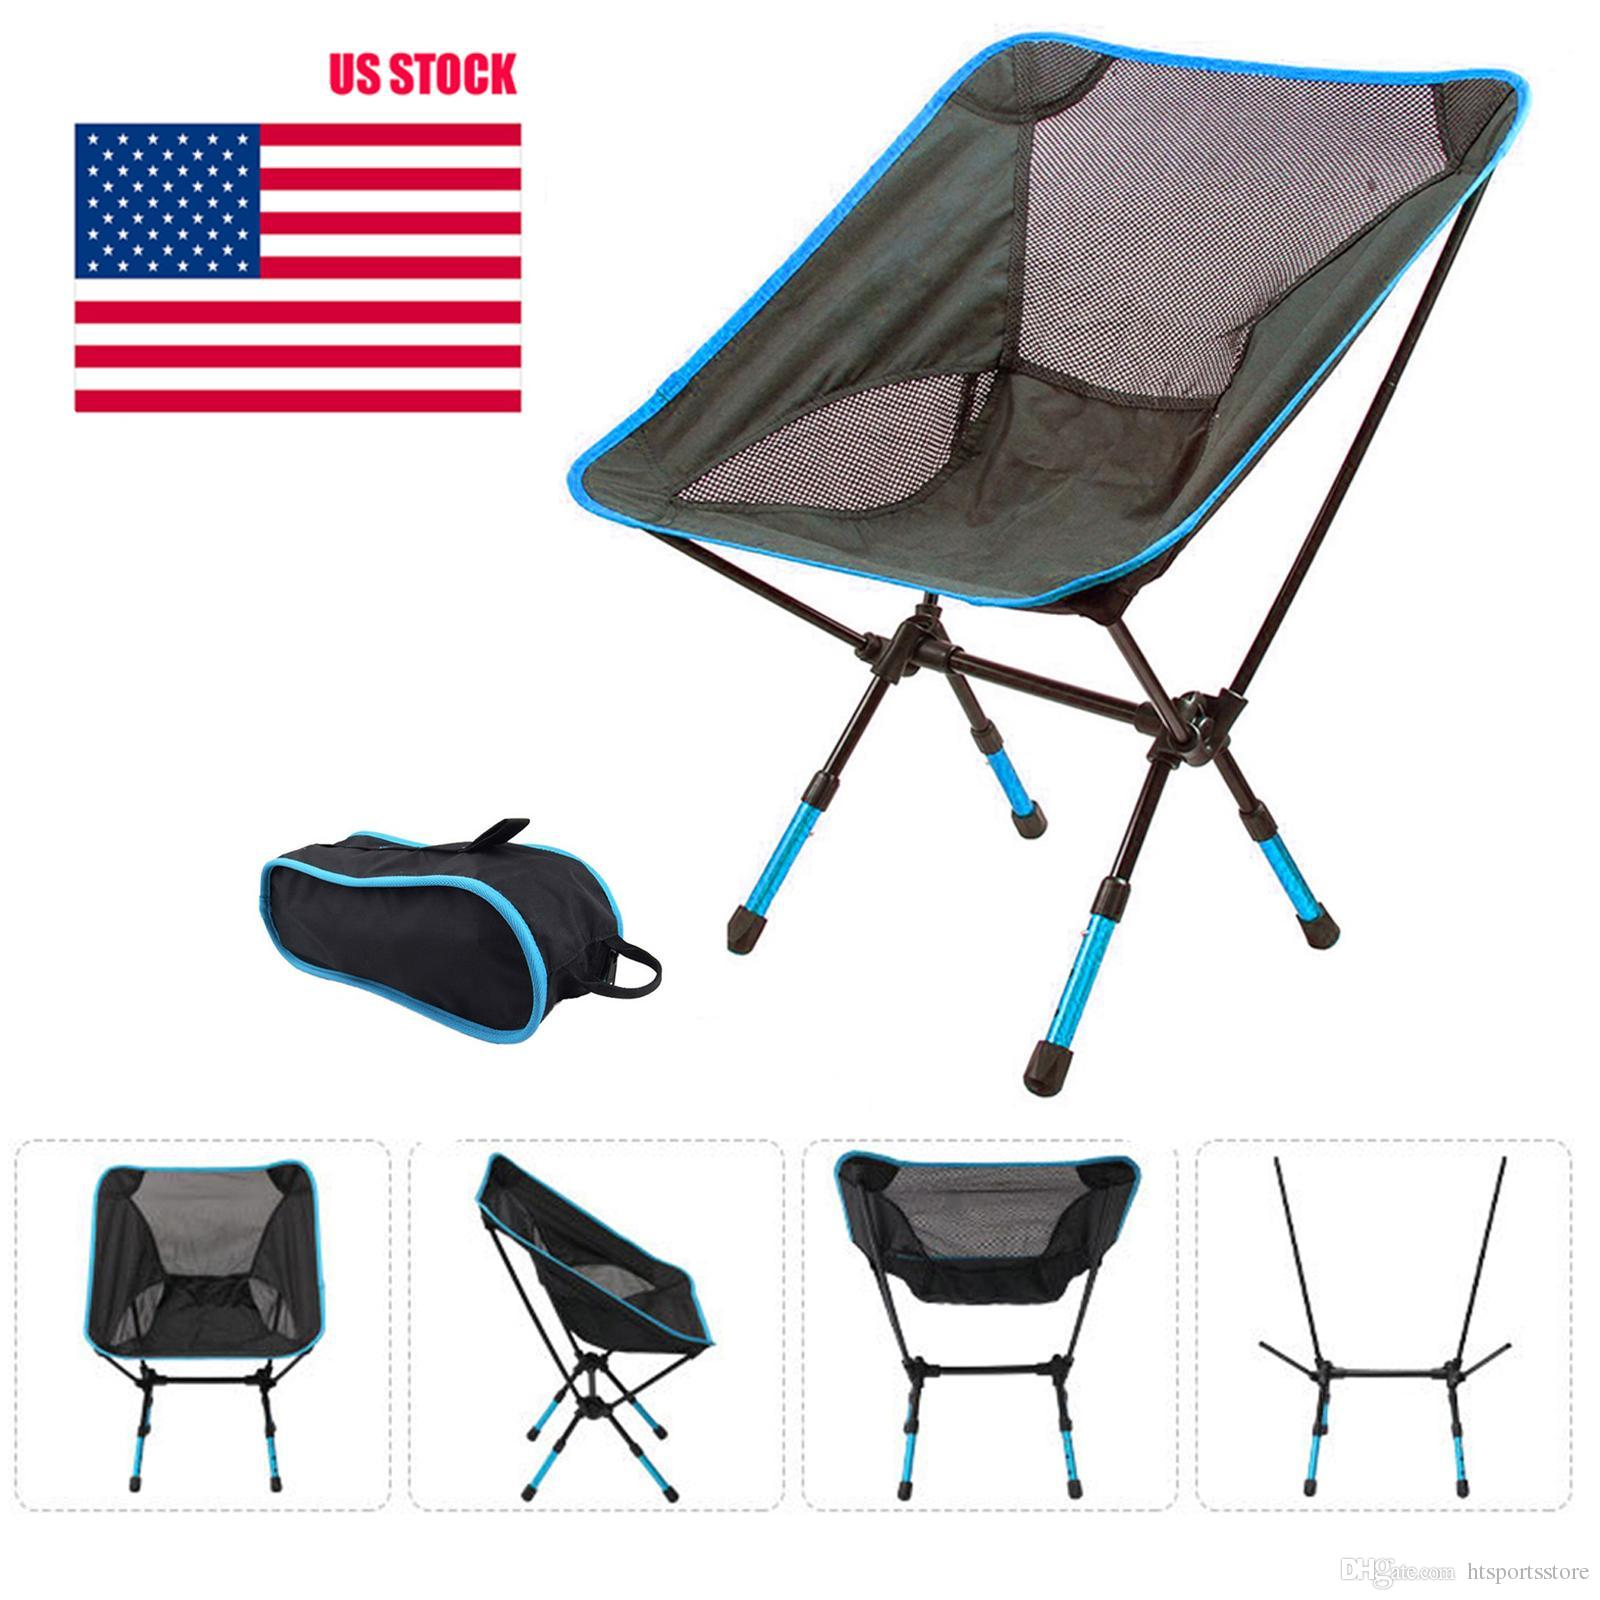 fishing chair best price covers wholesale adjustable folding outdoor camping lightweight portable cheap toughage events chairs